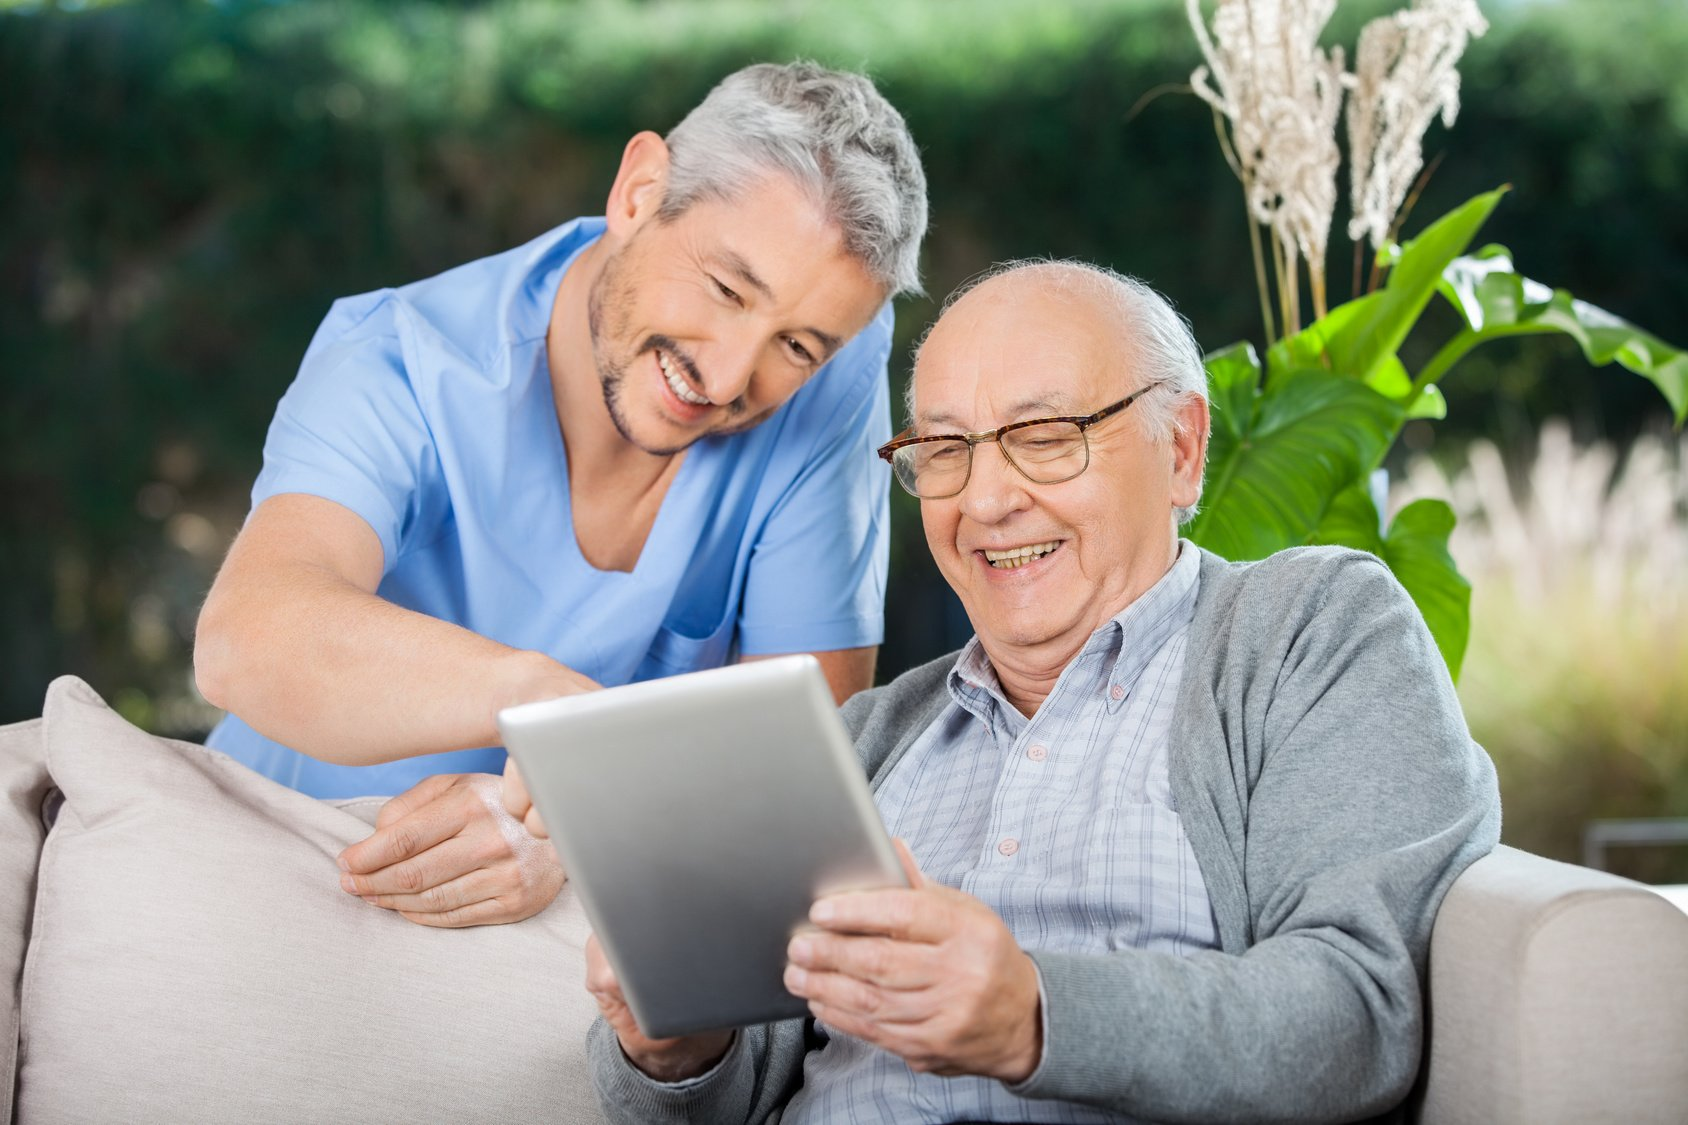 5 Things You Never Knew about Being a Caregiver